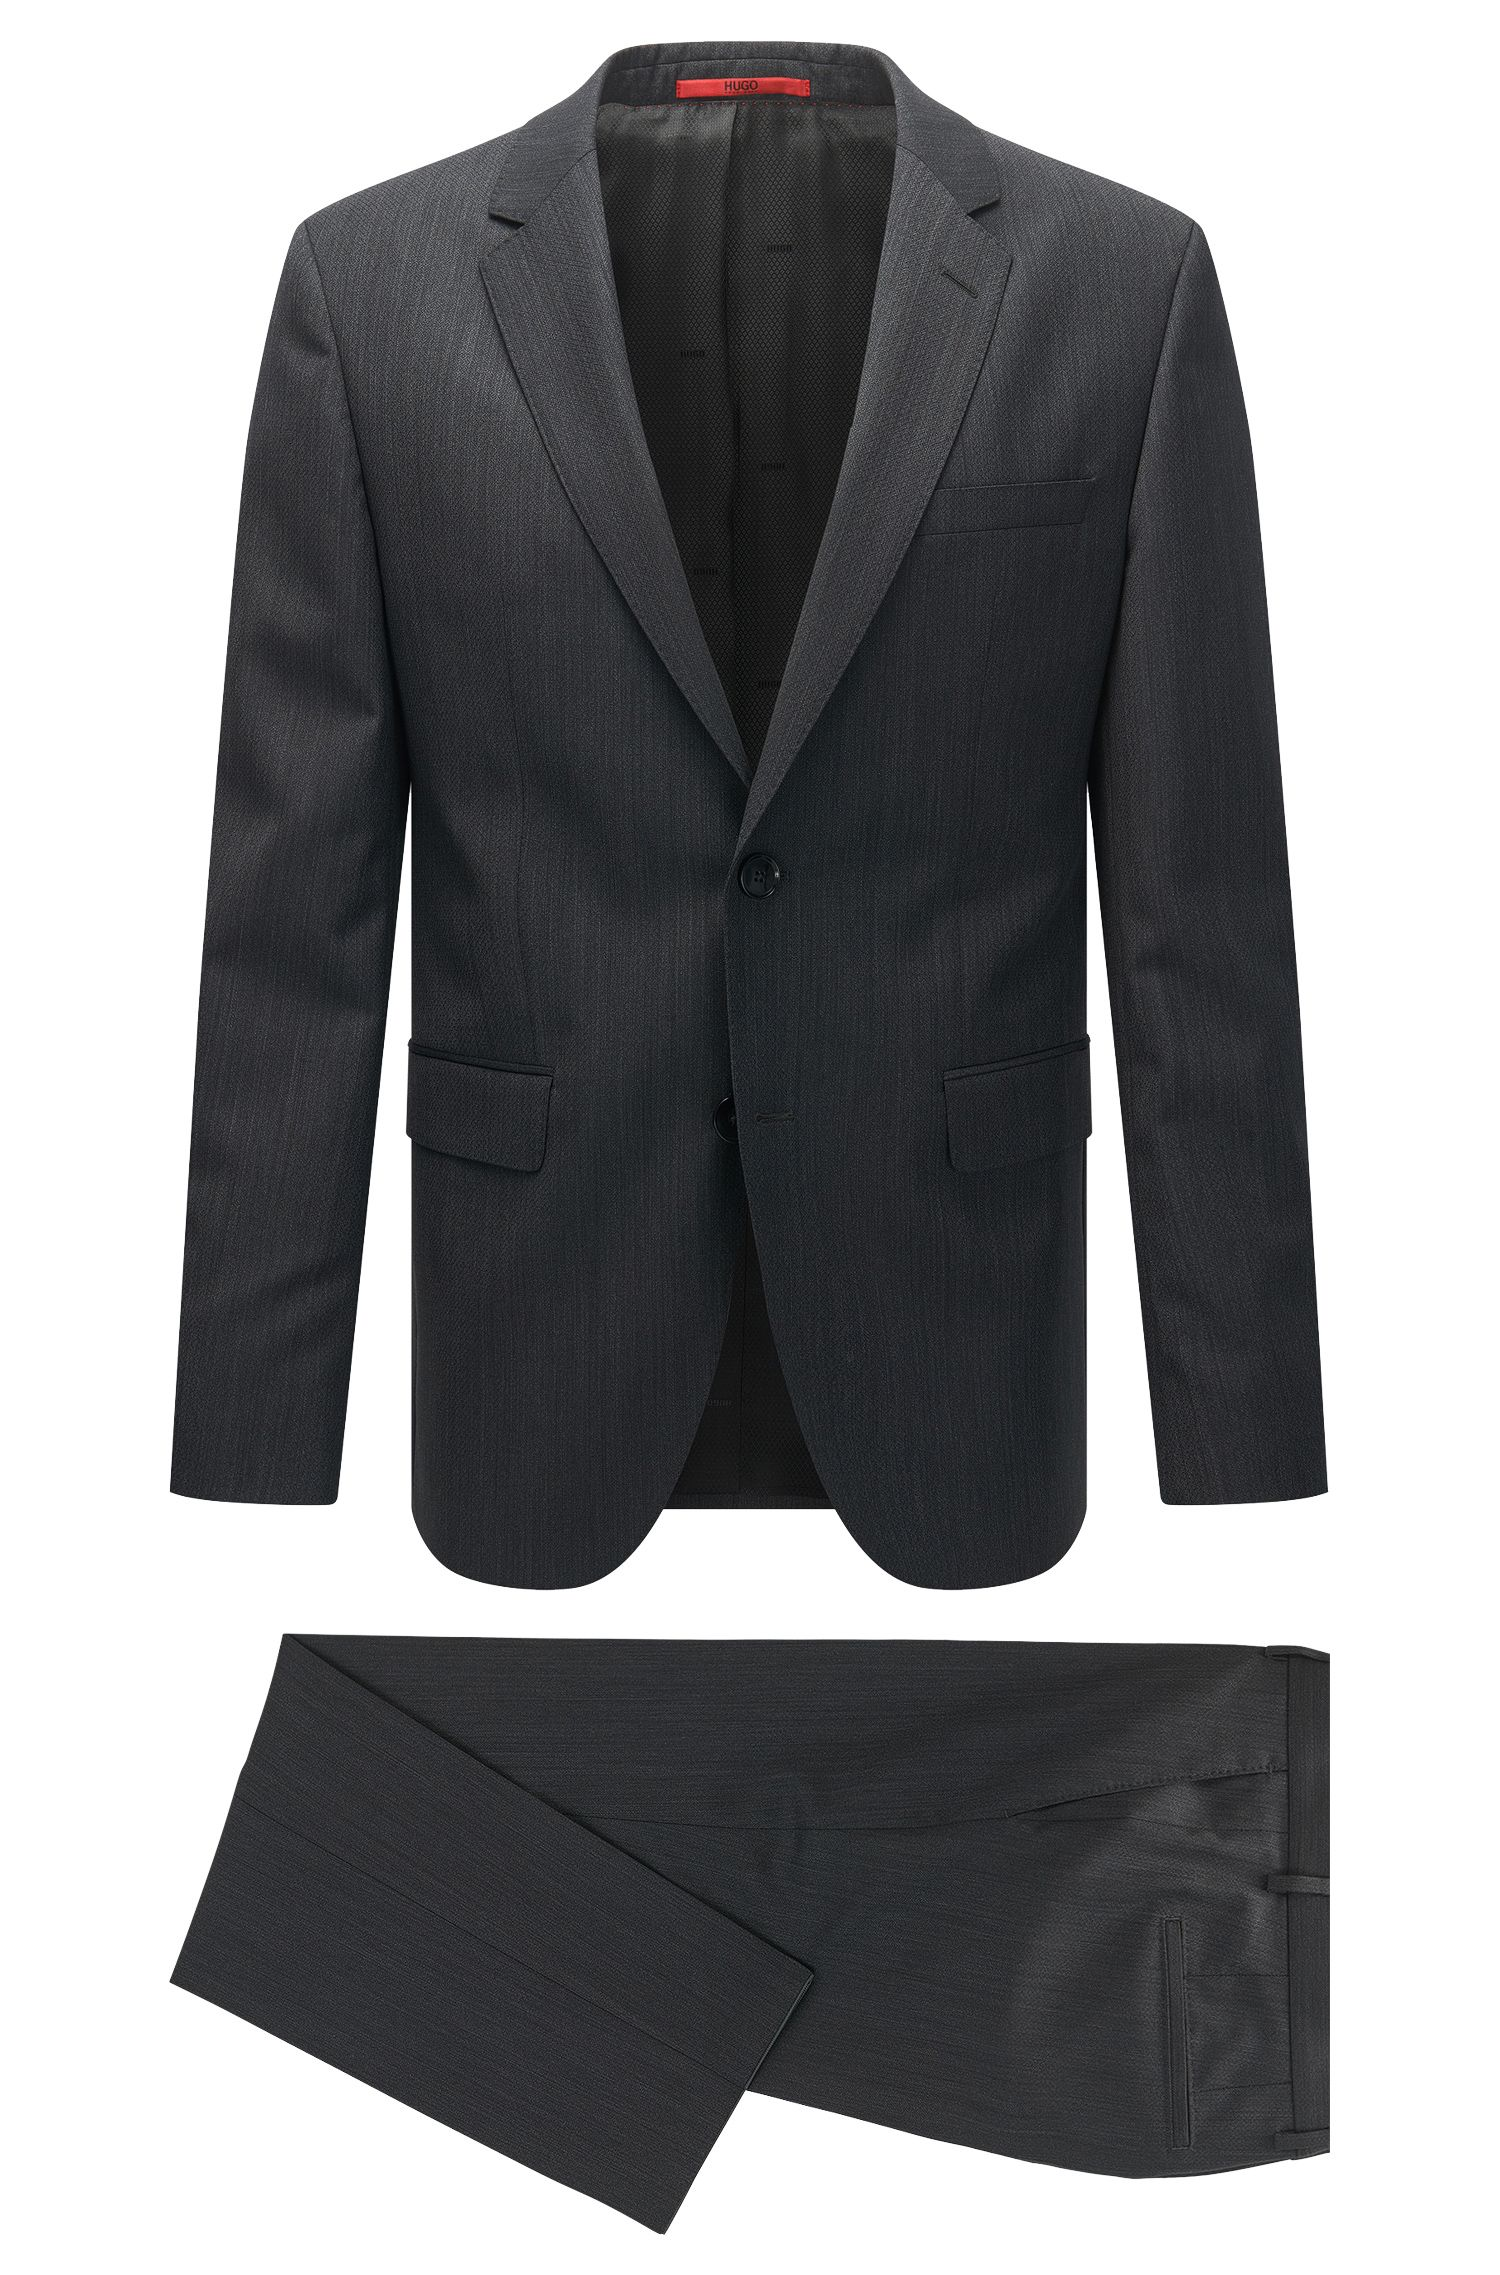 Regular-fit suit in a textured virgin wool blend